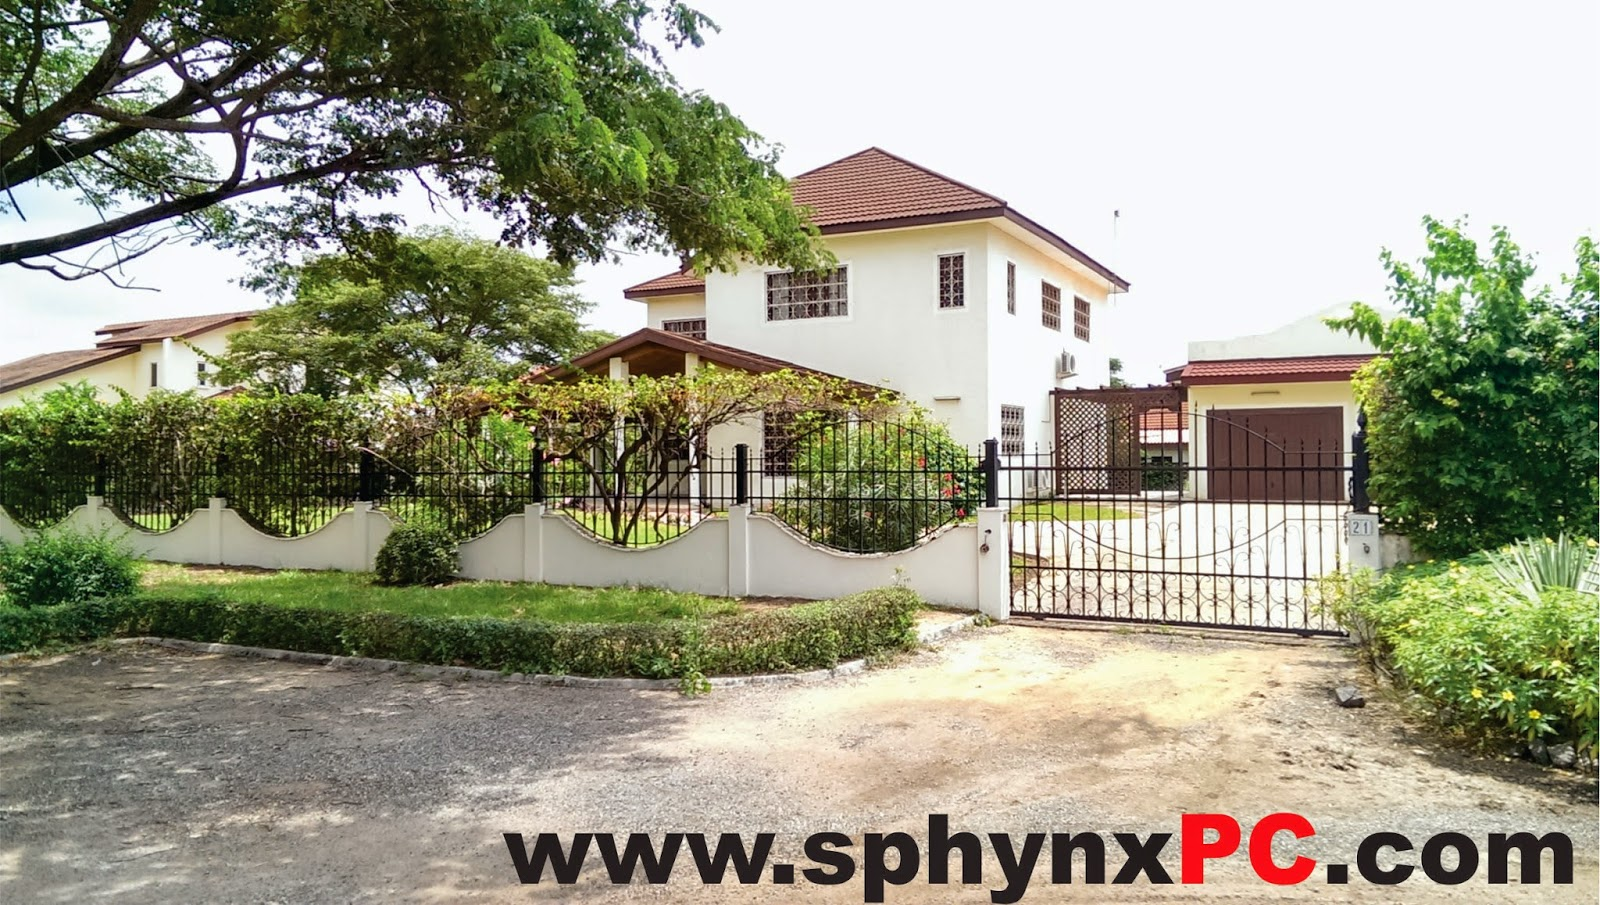 Nice Homes In Ghana likewise House For Rent West Legon Westlands Accra Ghana also House For Sale Fiore Village On Accra in addition Eg Garden House Designs Ghana together with House For Sale Trasacco Valley Accra Ghana. on trasacco valley houses accra in ghana